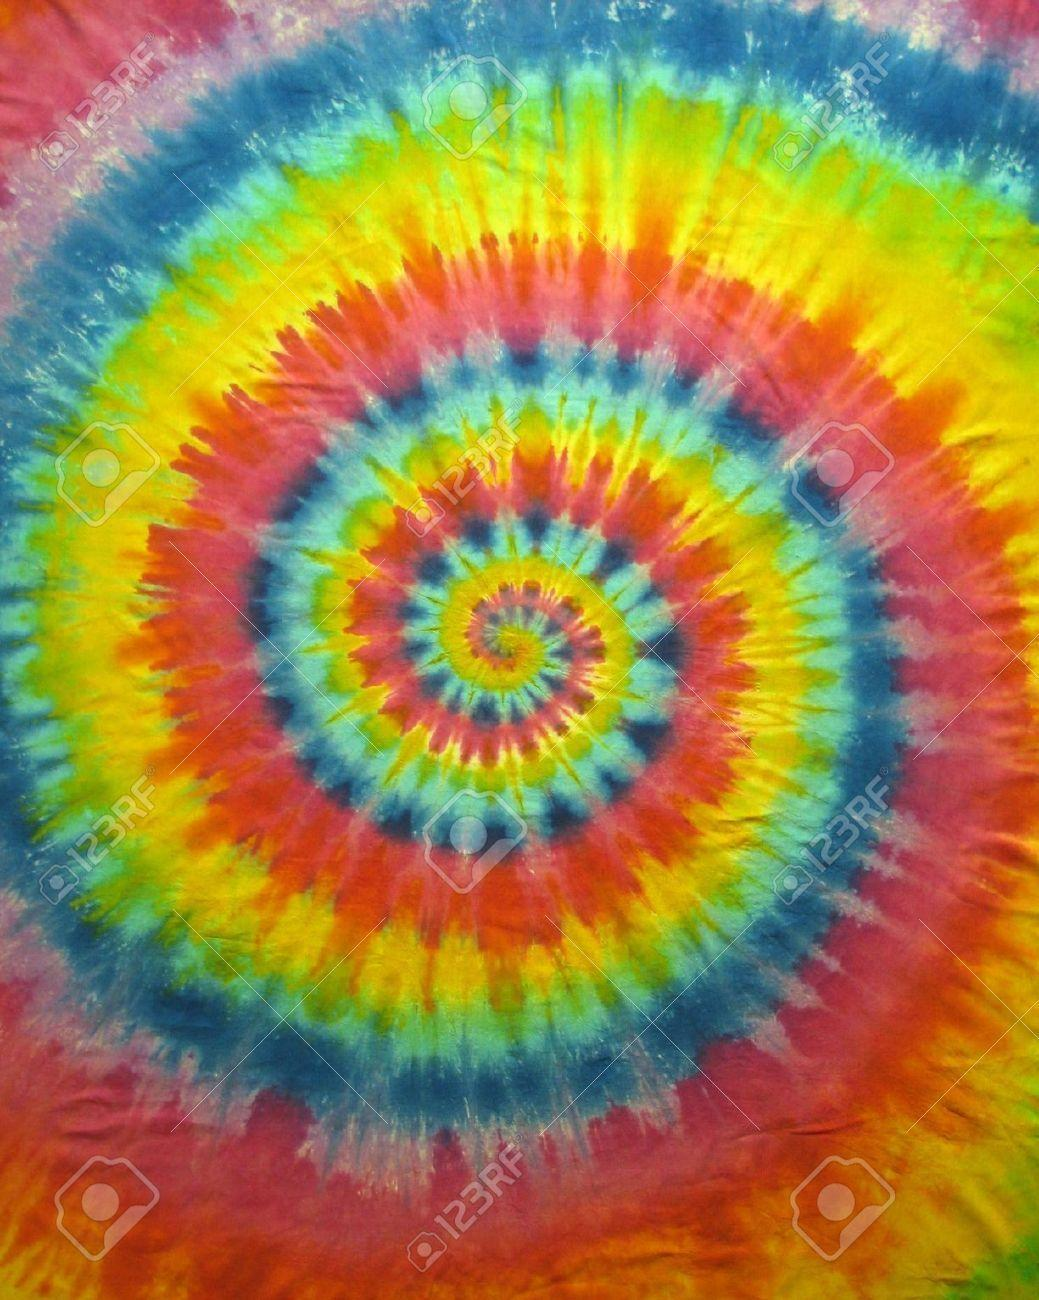 tie dye iphone wallpaper hippie patterns wallpapers wallpaper cave 16271